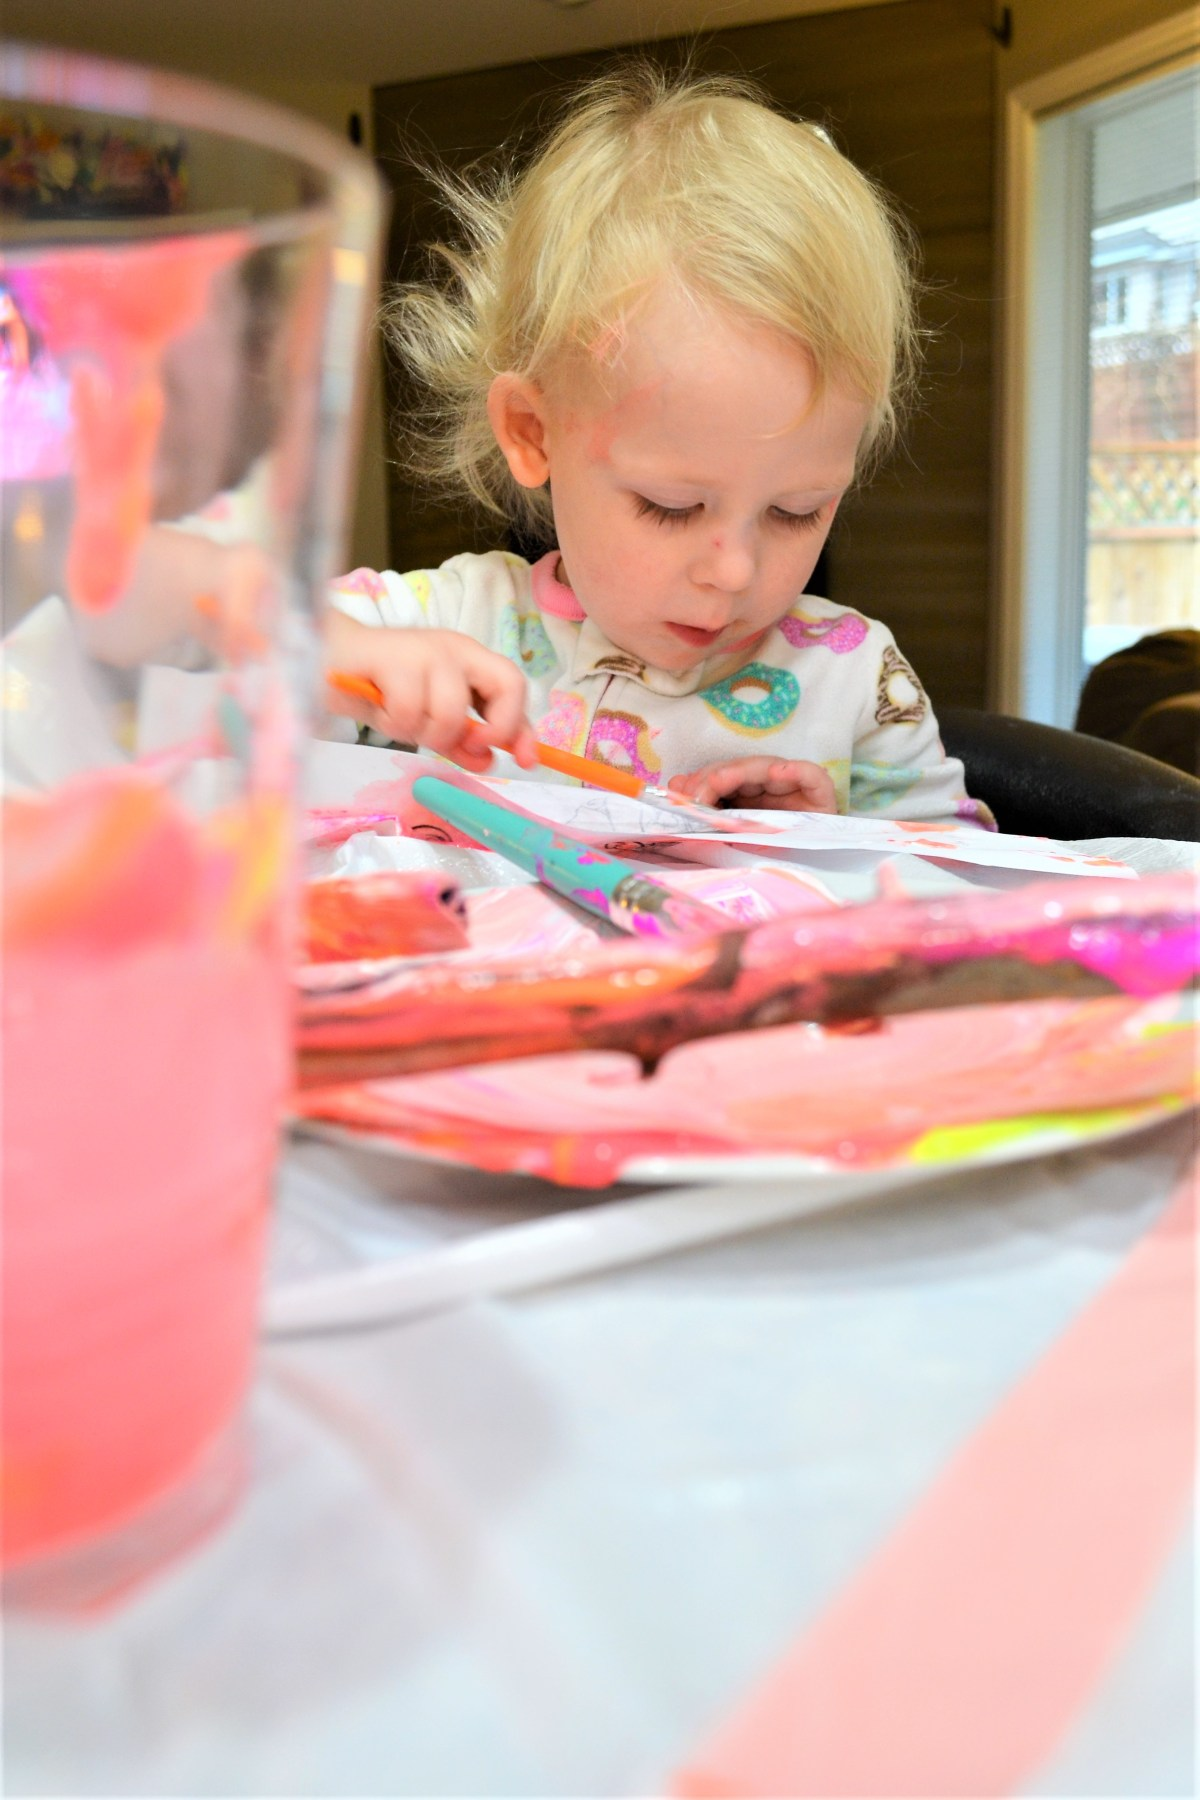 Crafts for kids - Painted Sticks! - concentrating